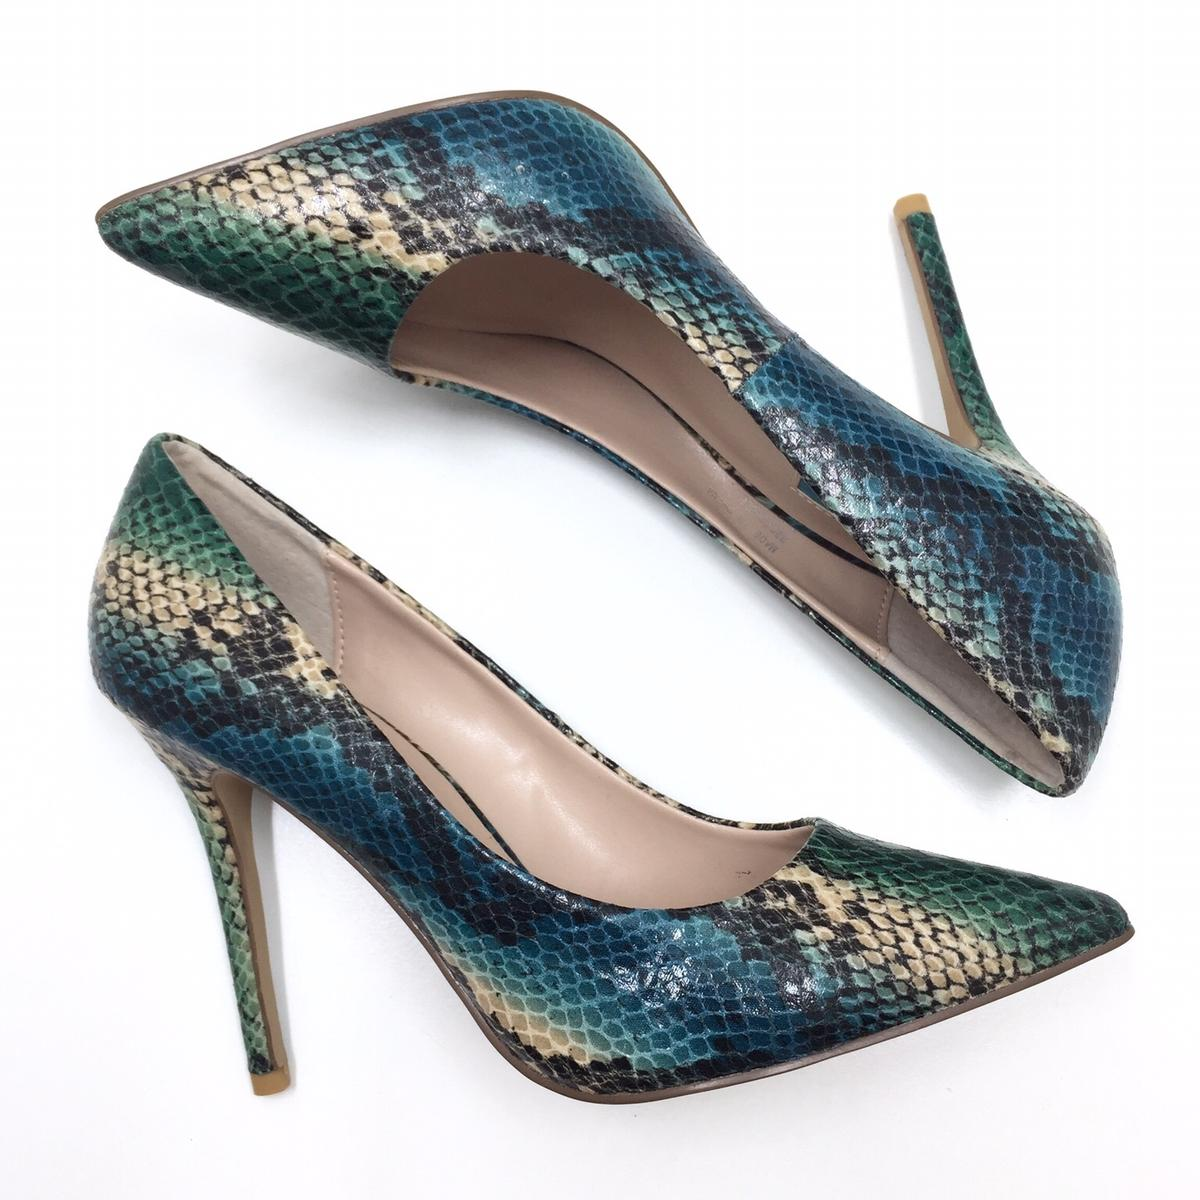 69094b2854f BN Topshop Snakeskin Heels Shoes Size3/36